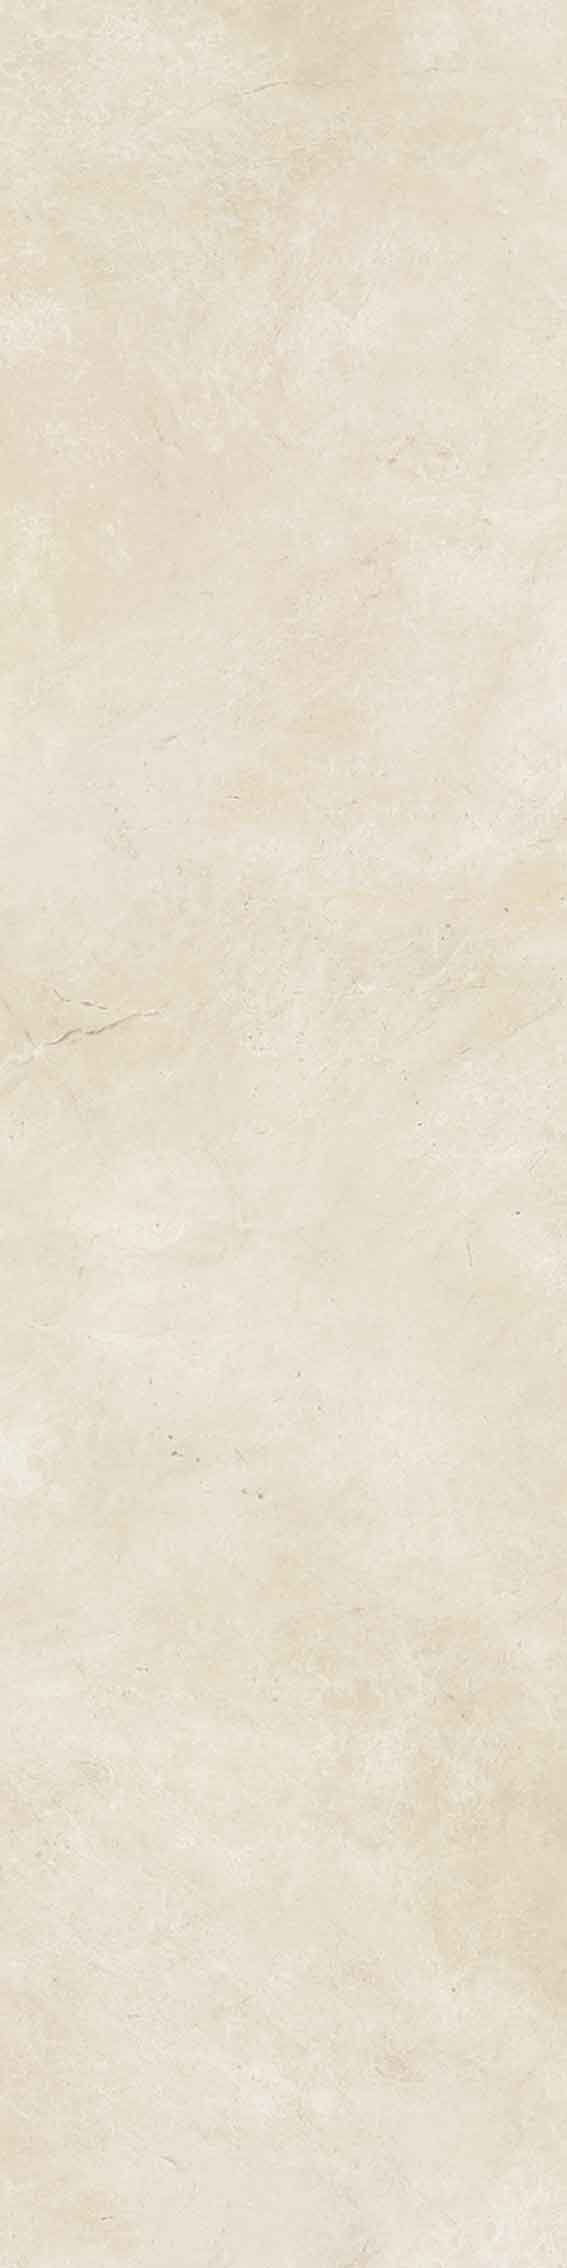 Stones and More Stone Marfil Smooth 6mm 60 x 240